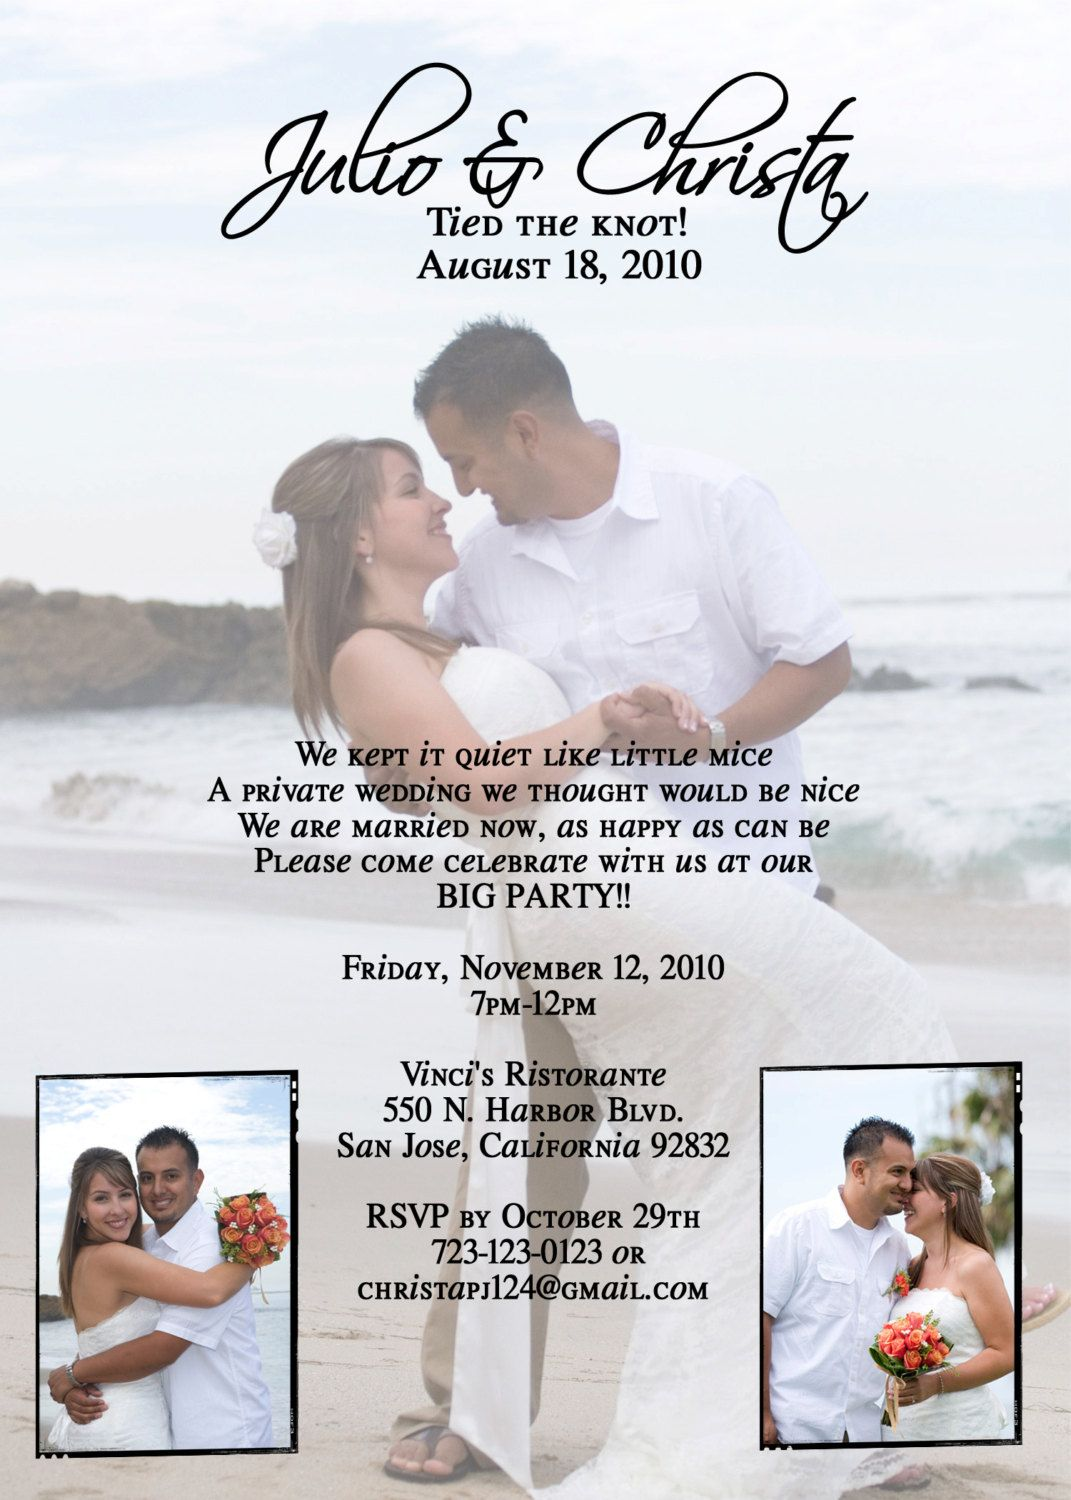 Made It Official Wedding Announcement – After Wedding Party Invitation Wording